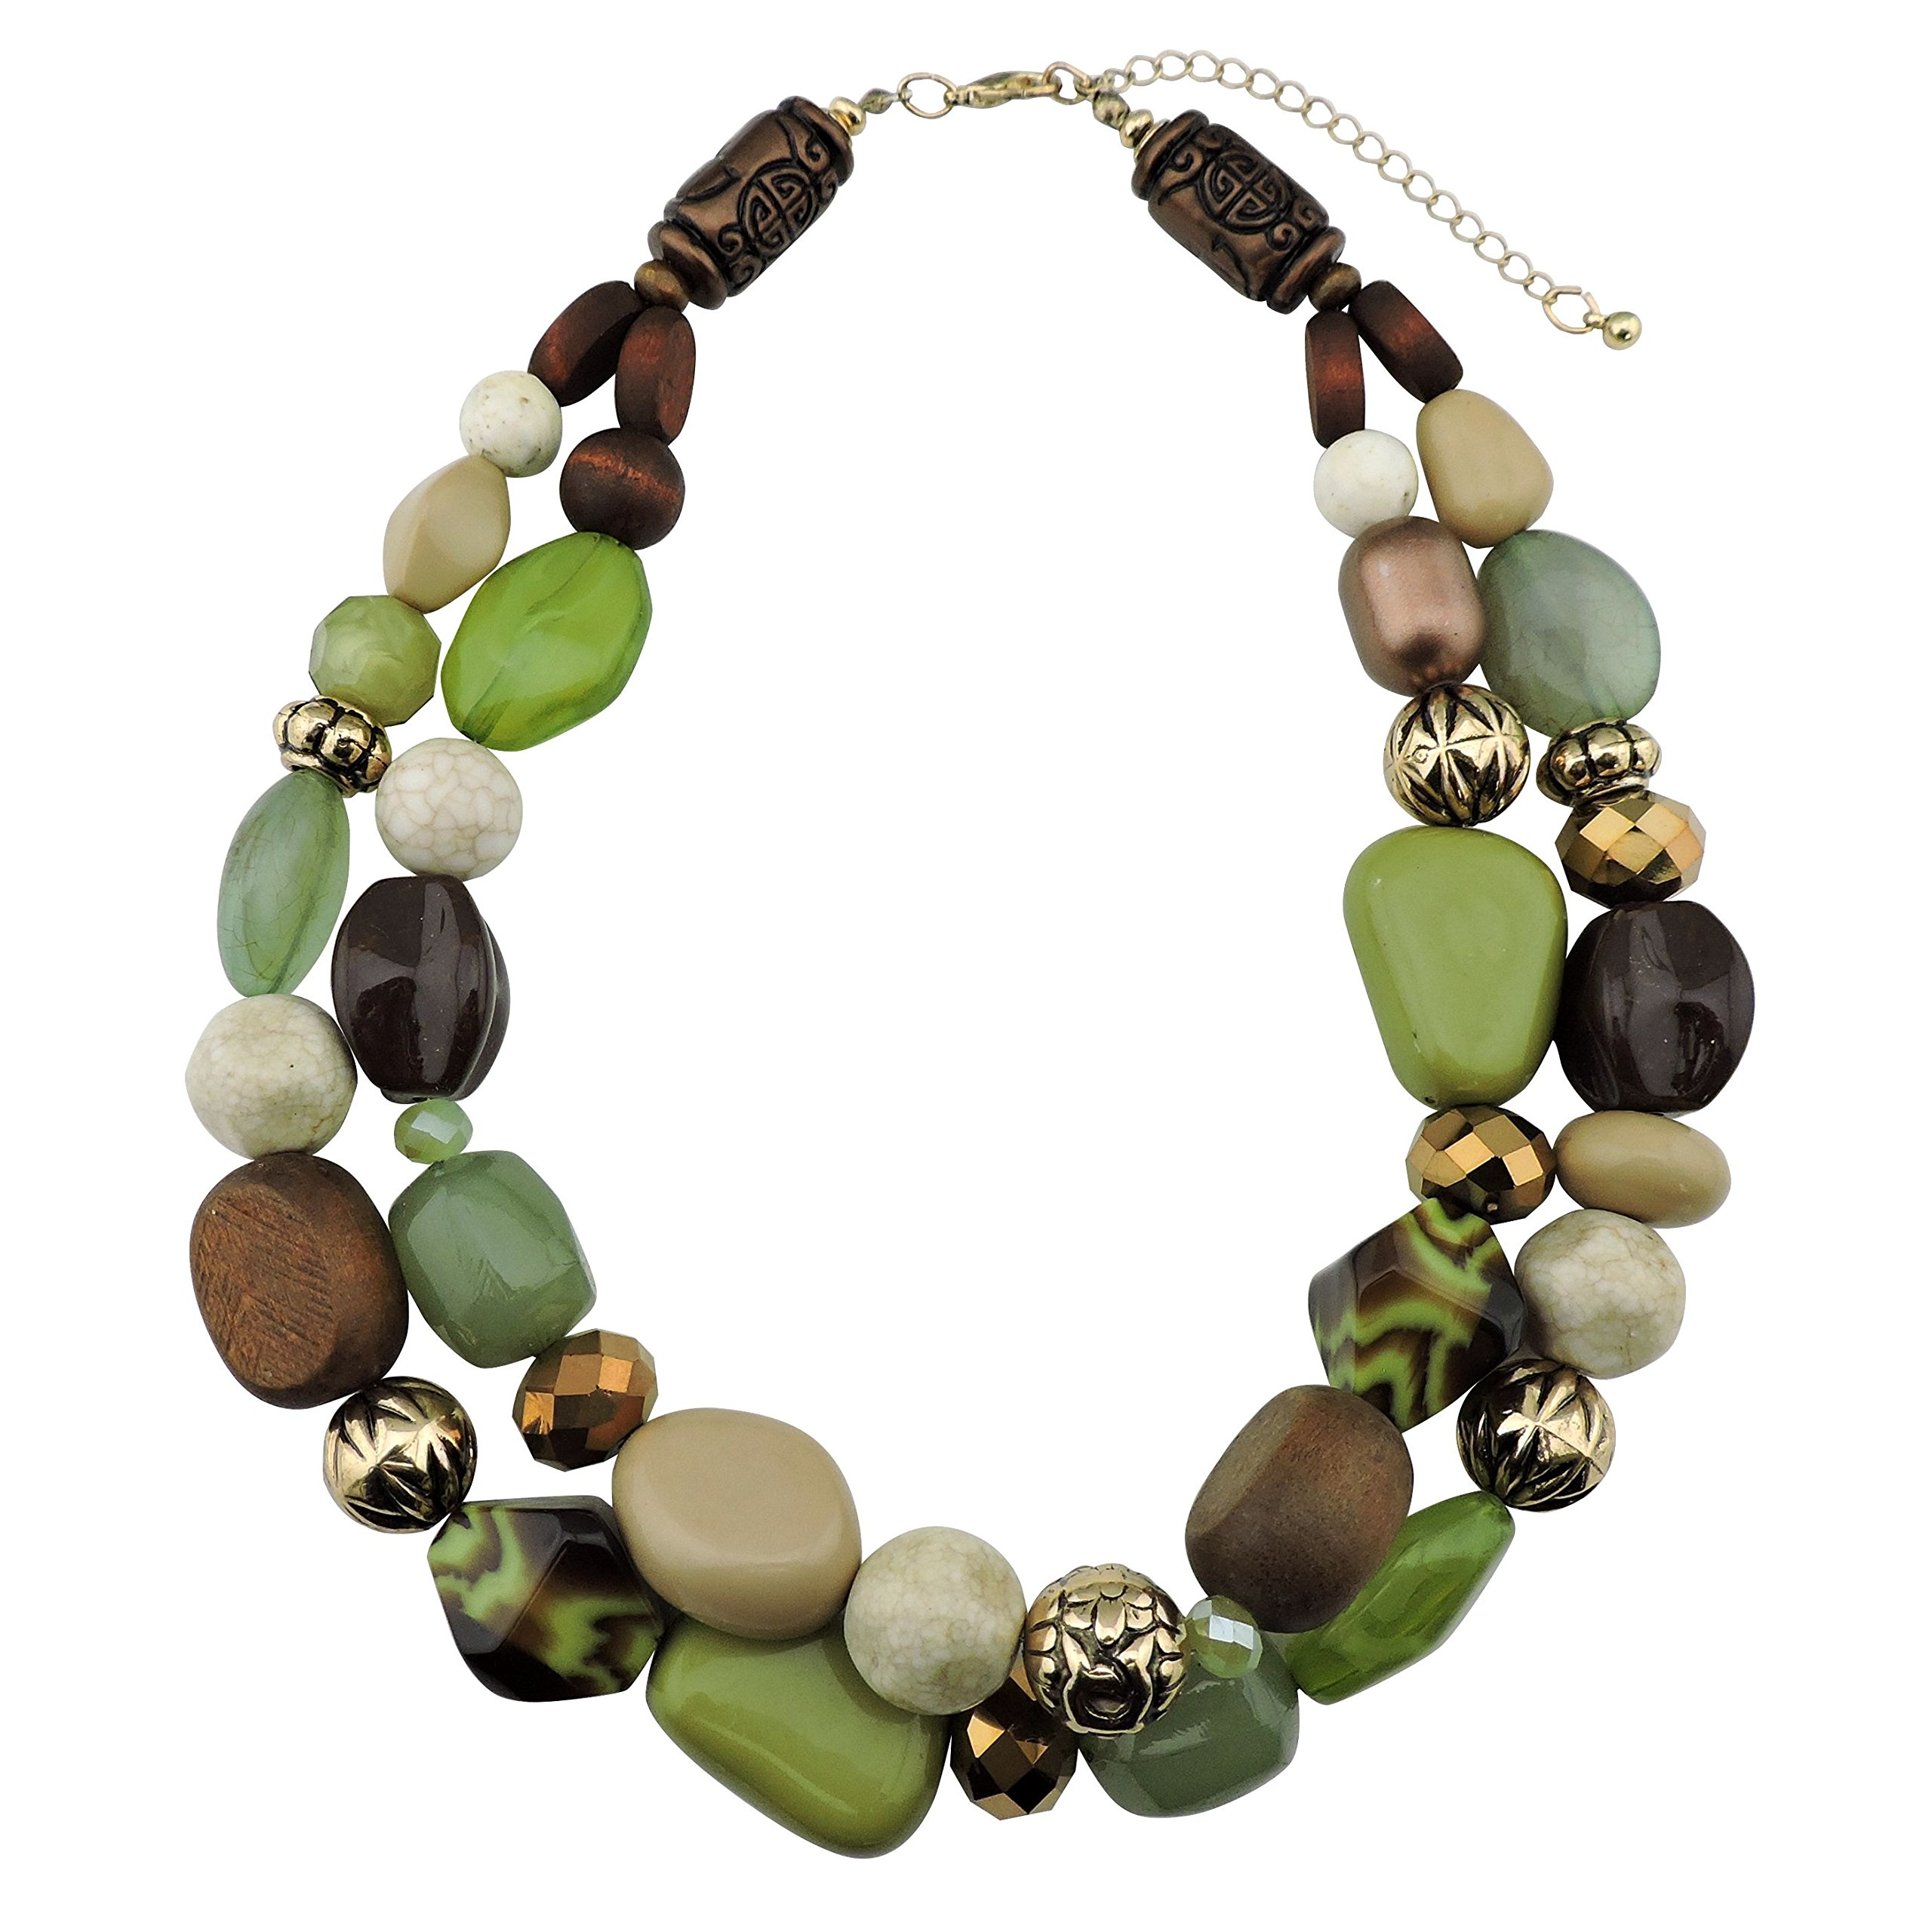 Bocar 2 Layer Statement Chunky Green Beaded Fashion Necklace for Women Gifts (NK-10384-olive)